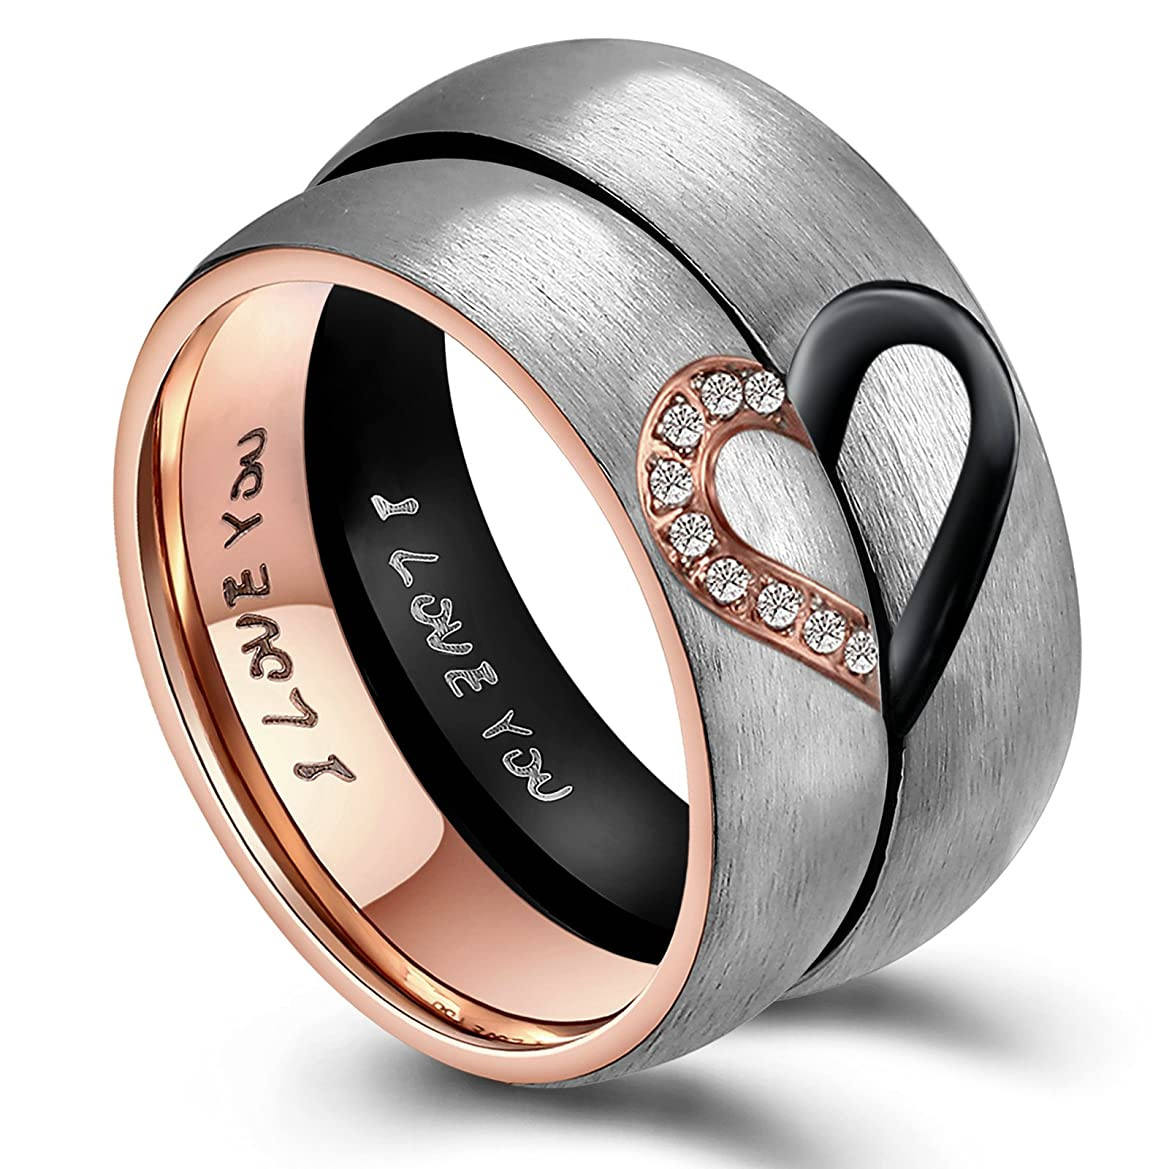 ANAZOZ His & Hers Real Love Heart Promise Ring Stainless Steel Couples Wedding Engagement Bands Top Ring, 6mm ucwwbqxypg7